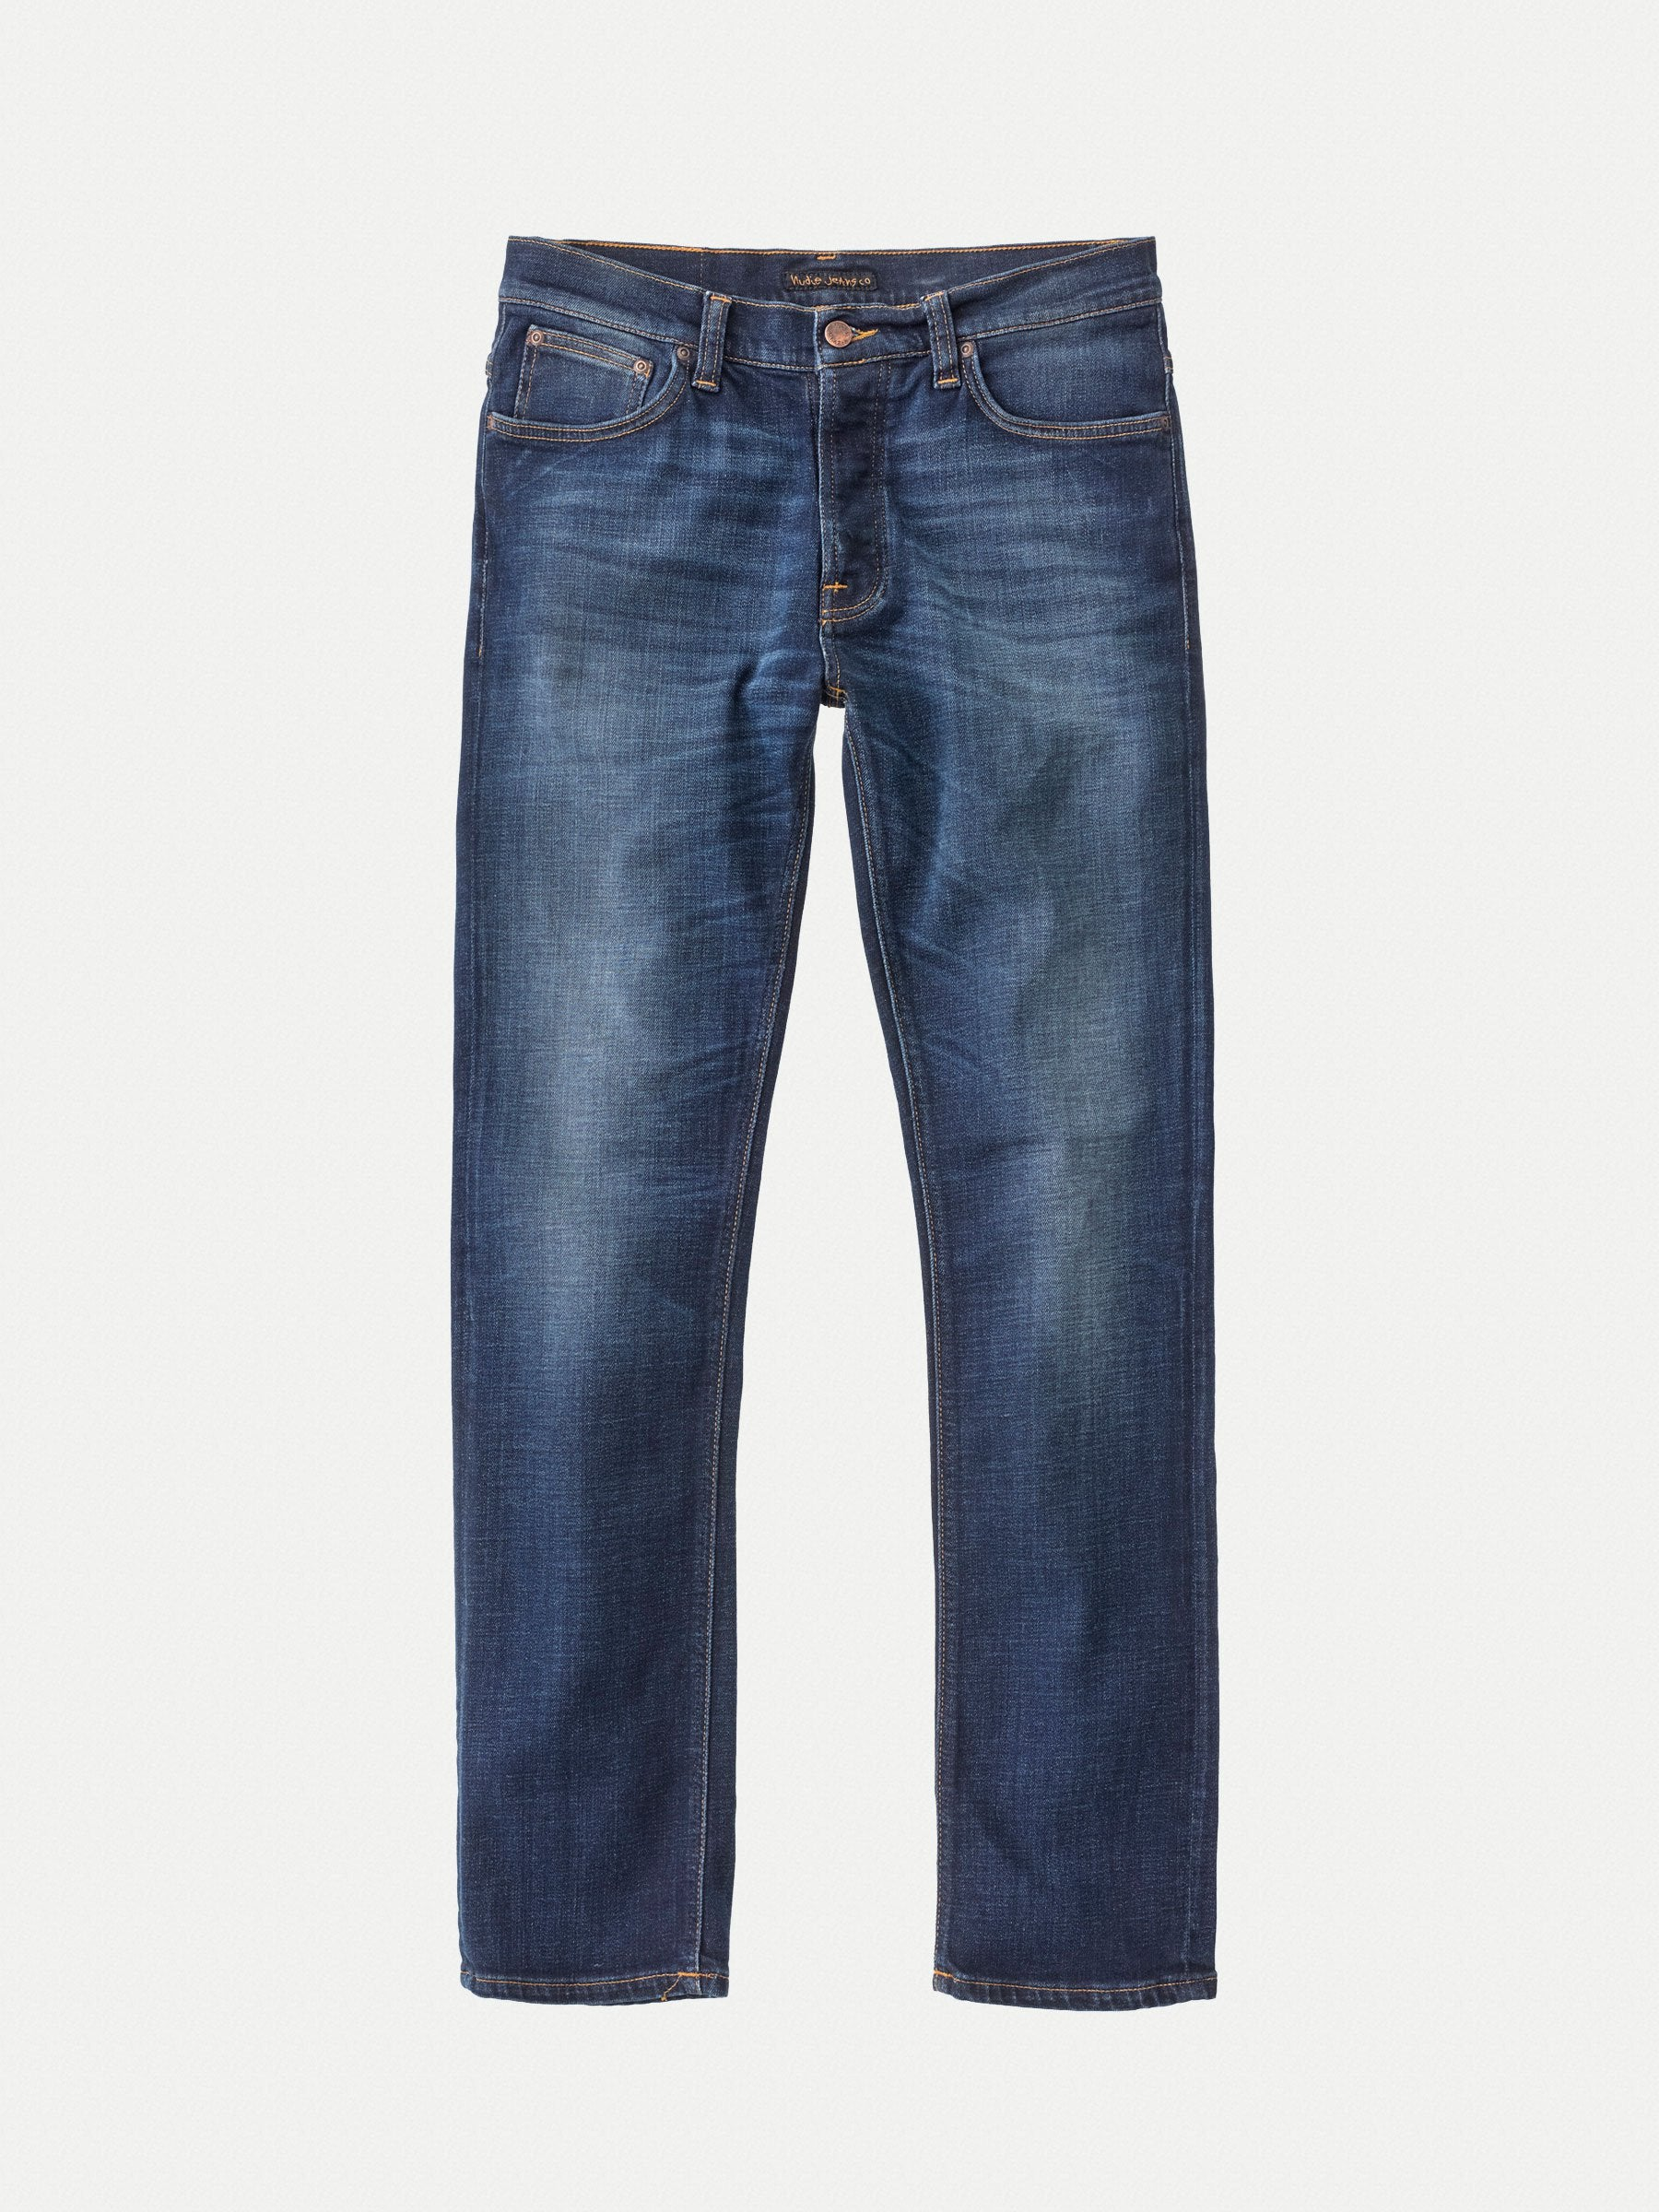 NUDIE JEANS DUDE DAN MEN'S JEANS 112808